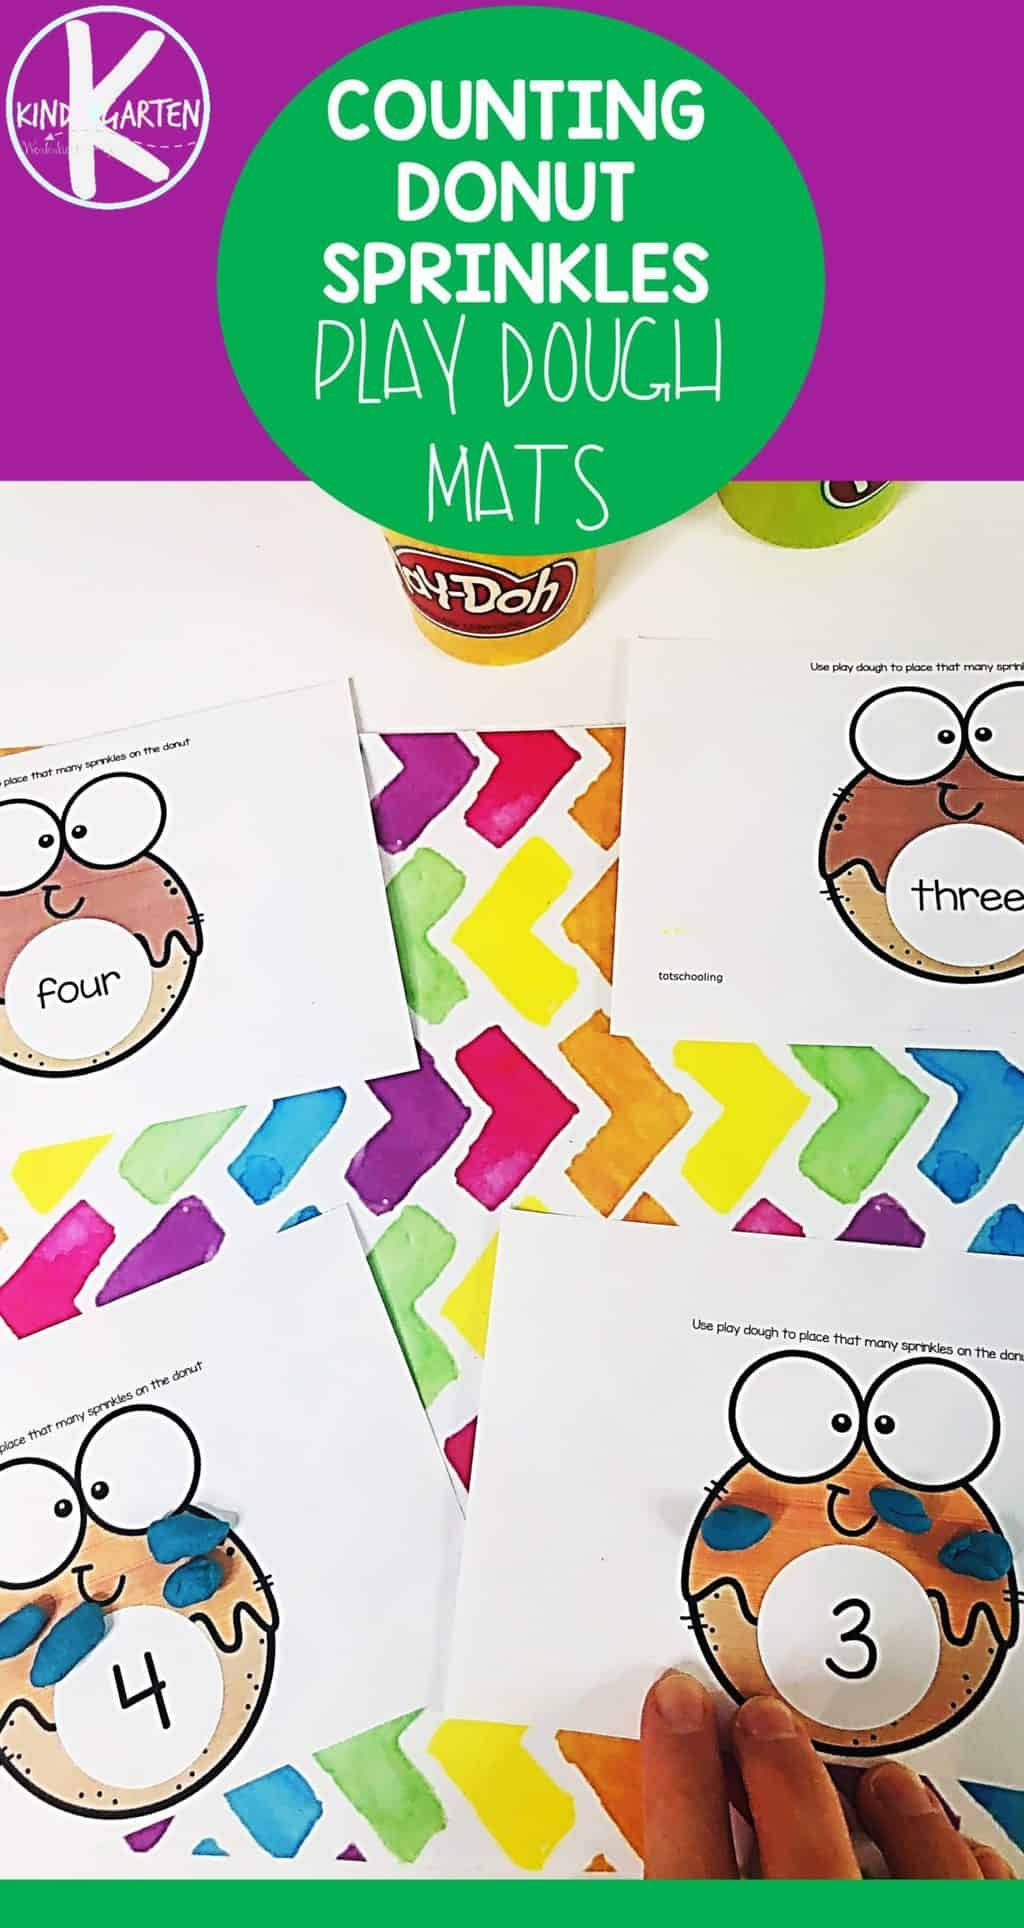 Free Donut Counting Playdough Mats For National Donut Day